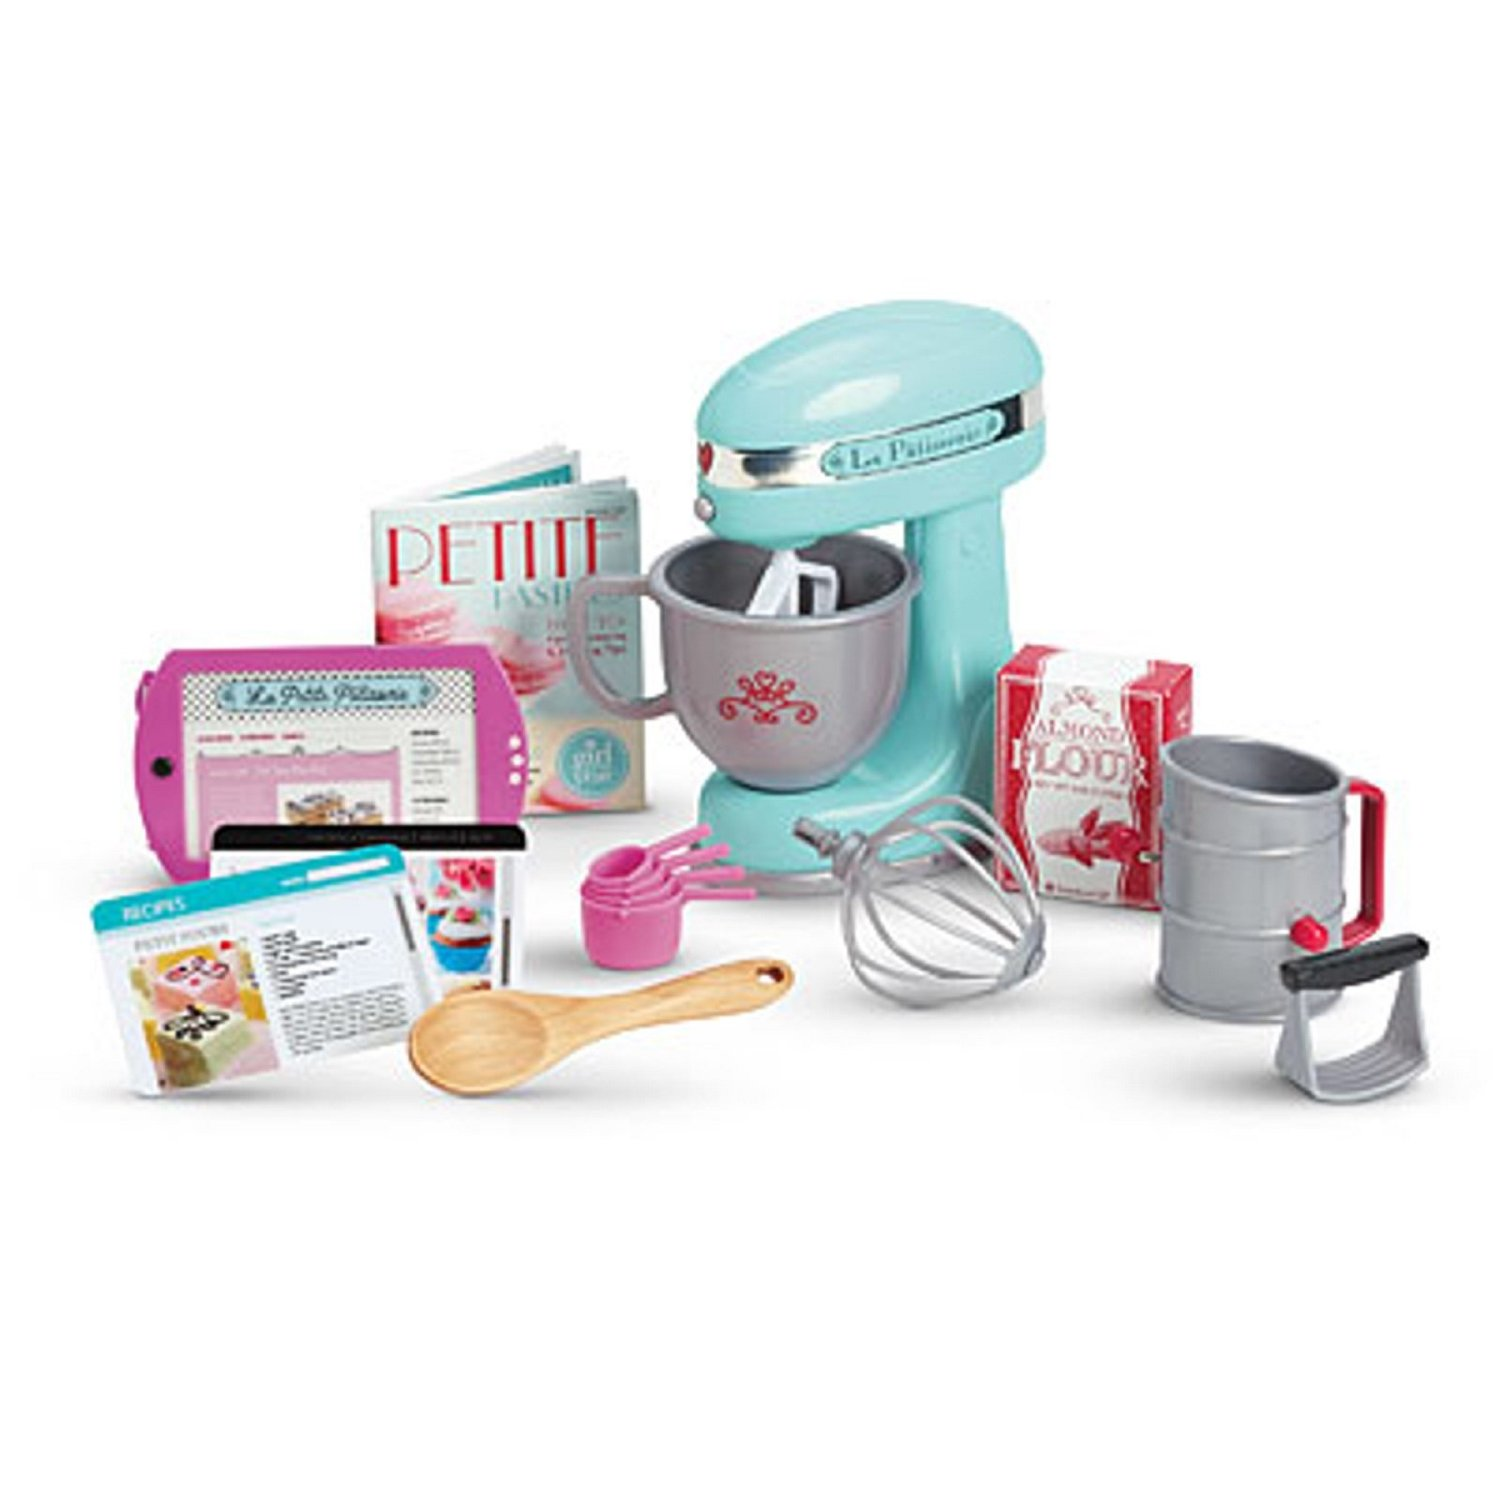 American Girl Grace - Grace's Baking Set for Dolls - American Girl of 2015